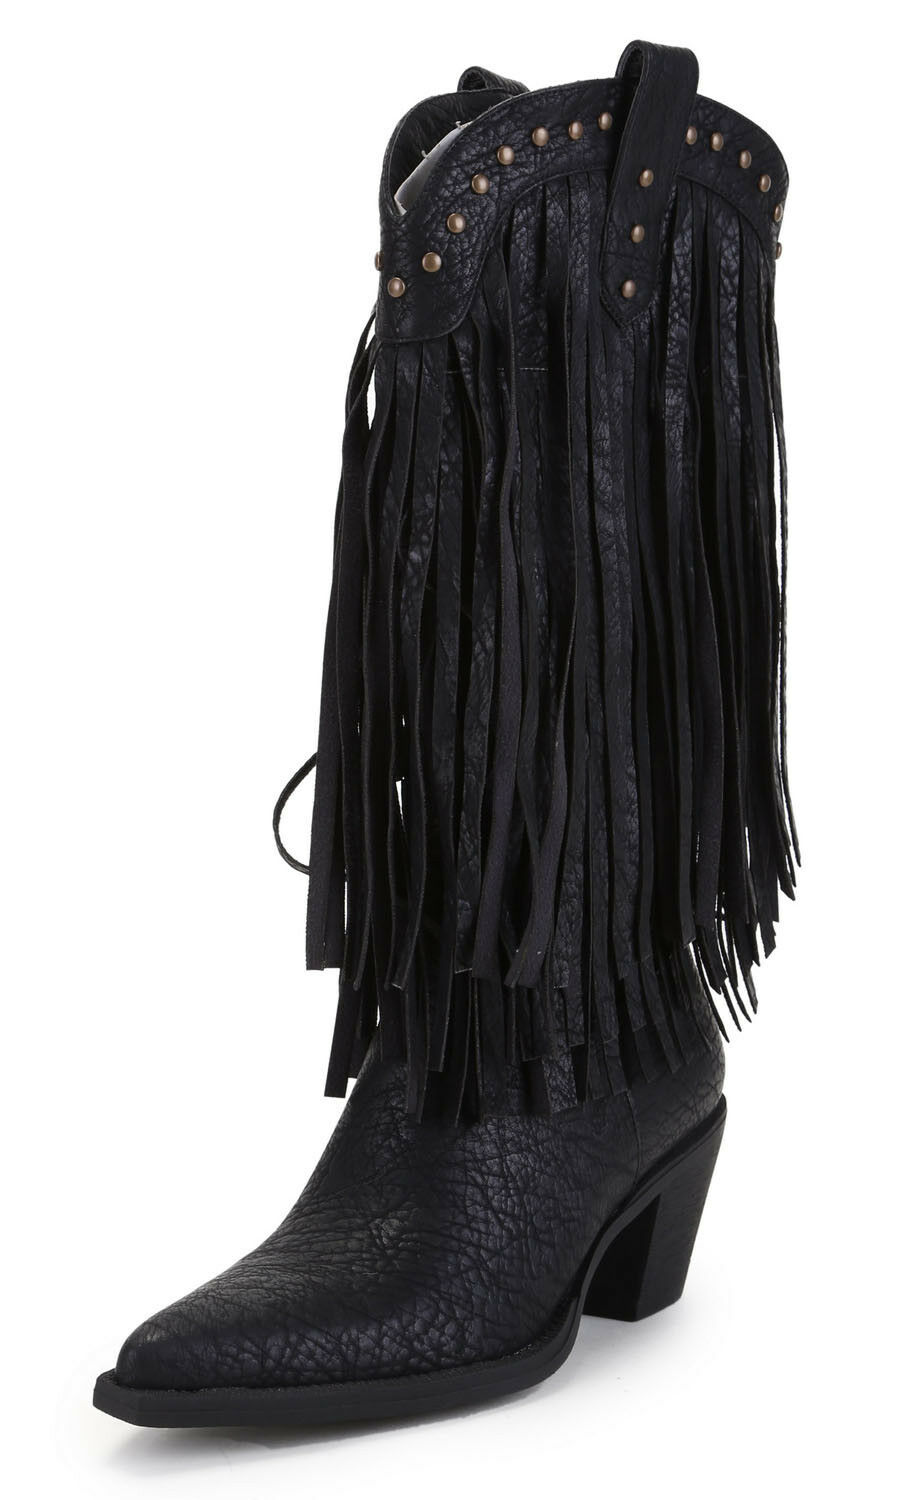 Ann Creek Women's Women's Women's 'Alley' Fringed Stud Boots fac60d